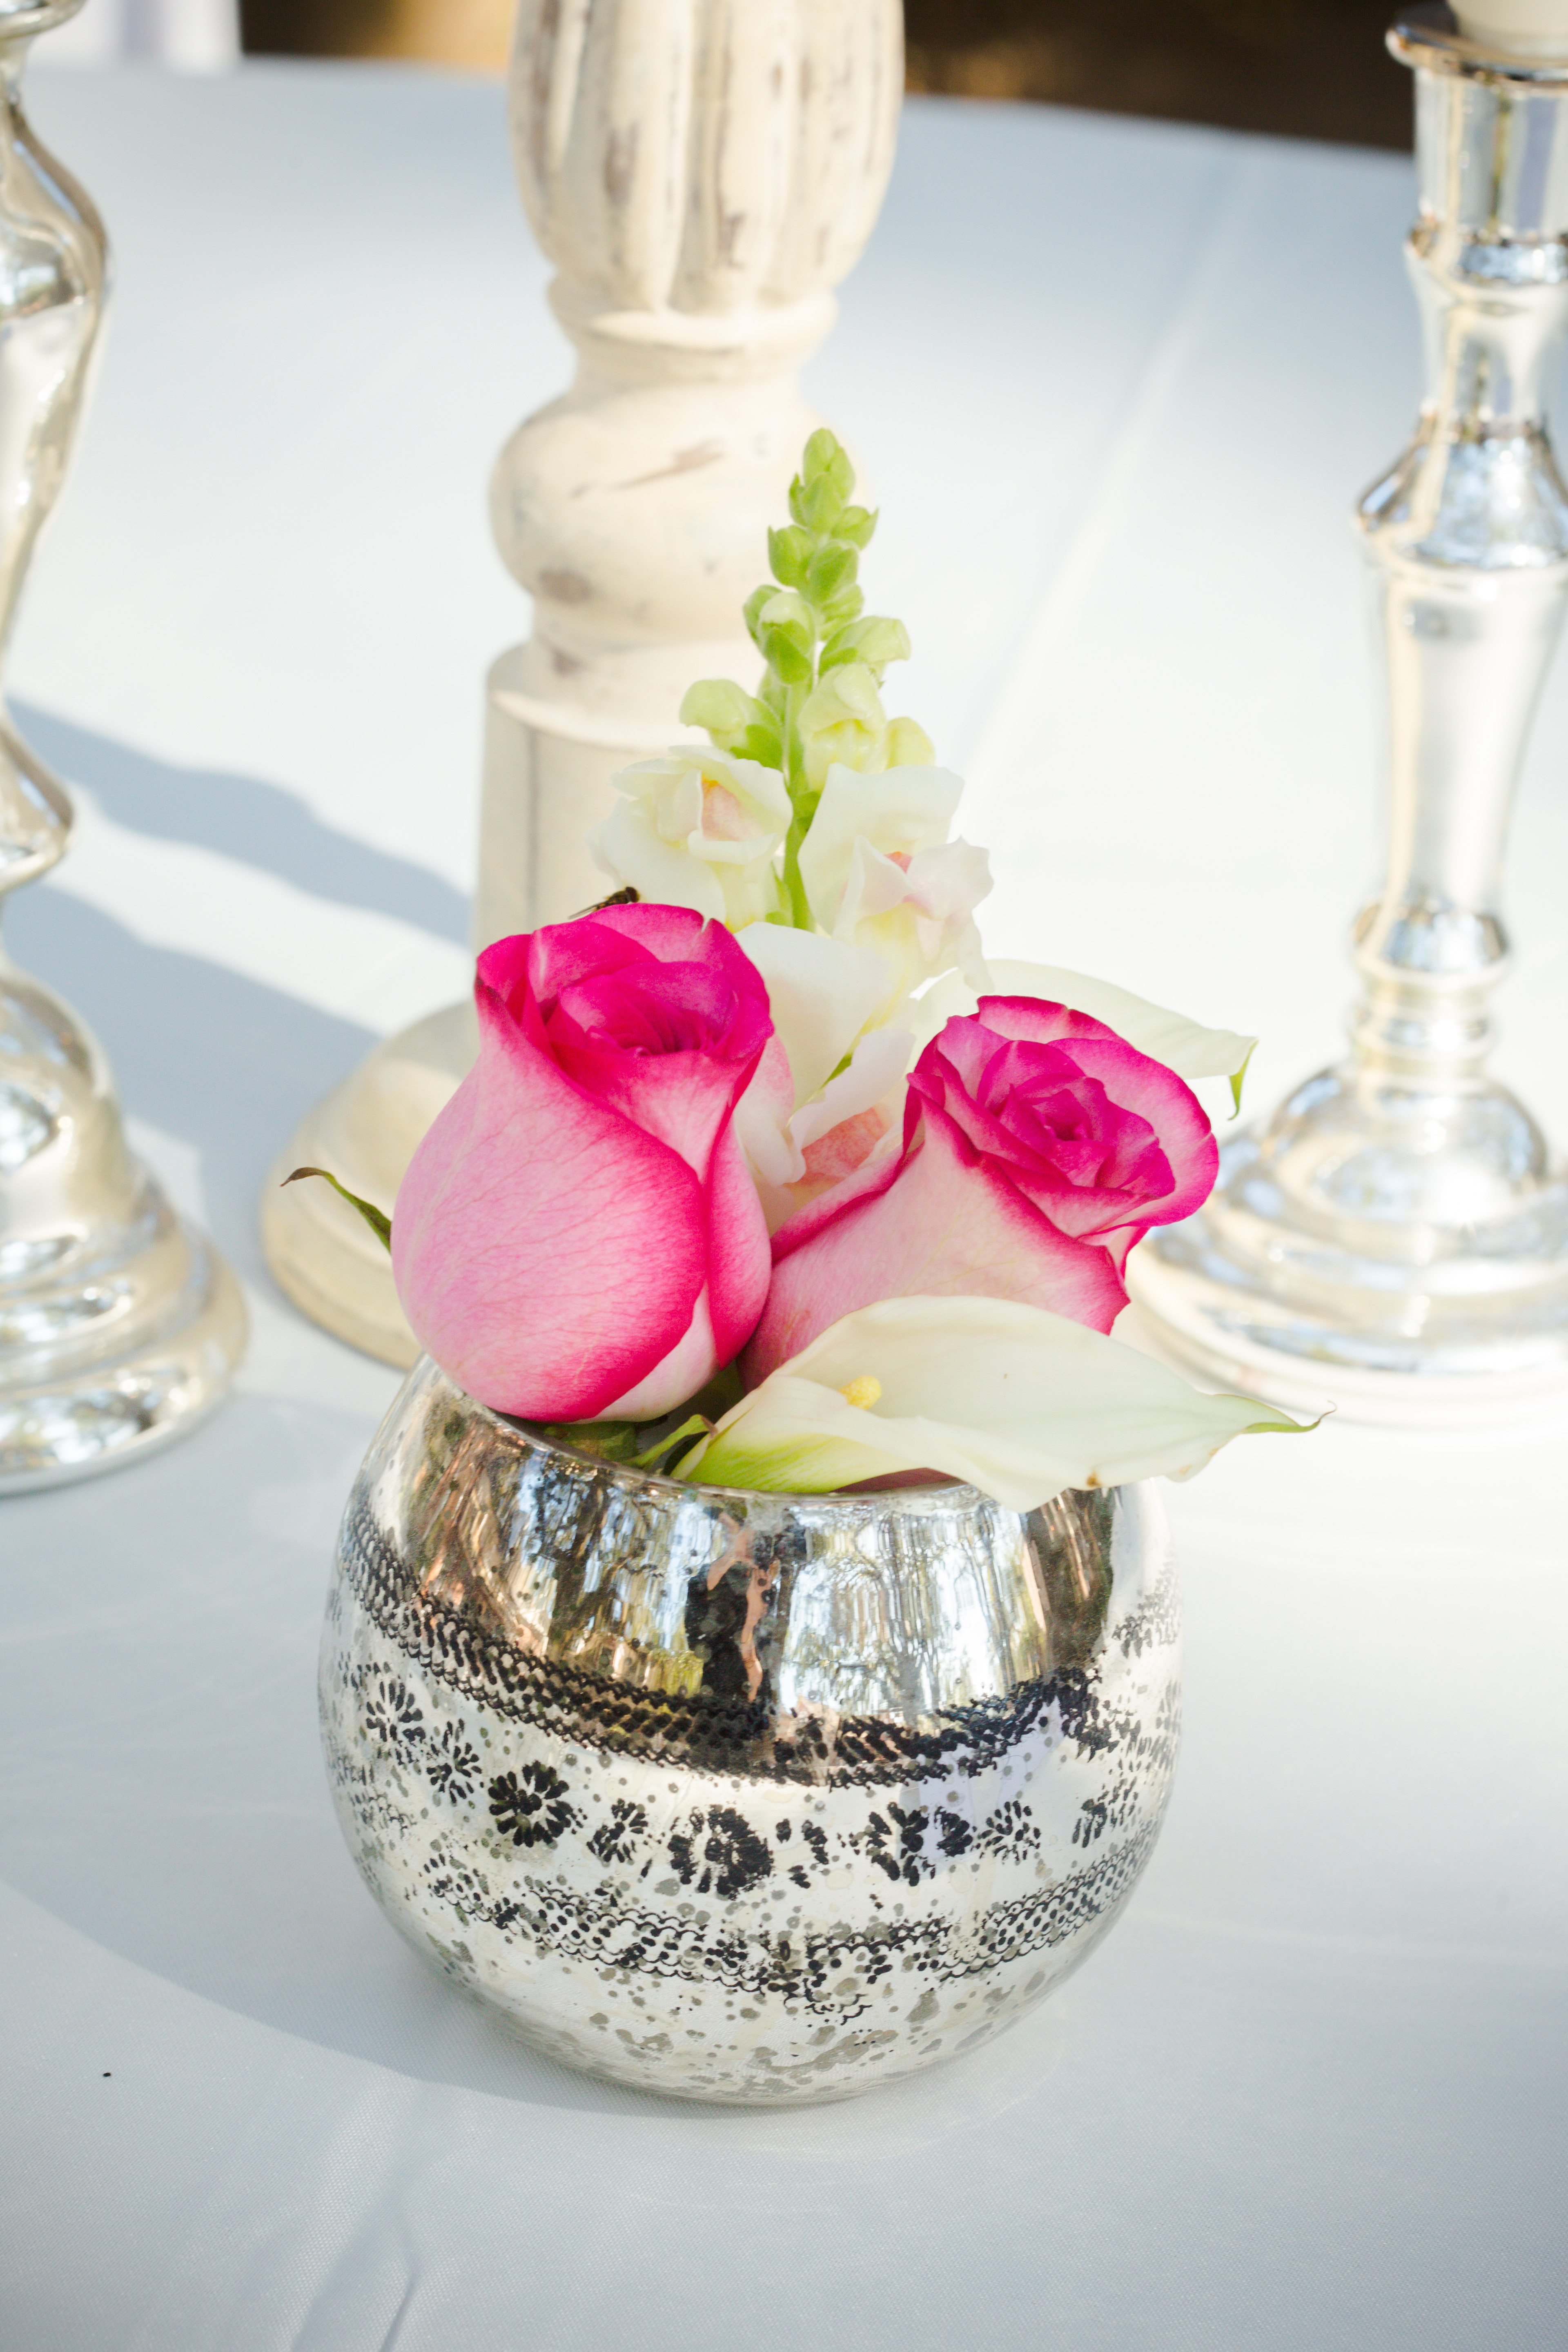 Flowers & Decor, Real Weddings, Wedding Style, pink, silver, Centerpieces, Southern Real Weddings, Winter Weddings, Winter Real Weddings, Vintage Wedding Flowers & Decor